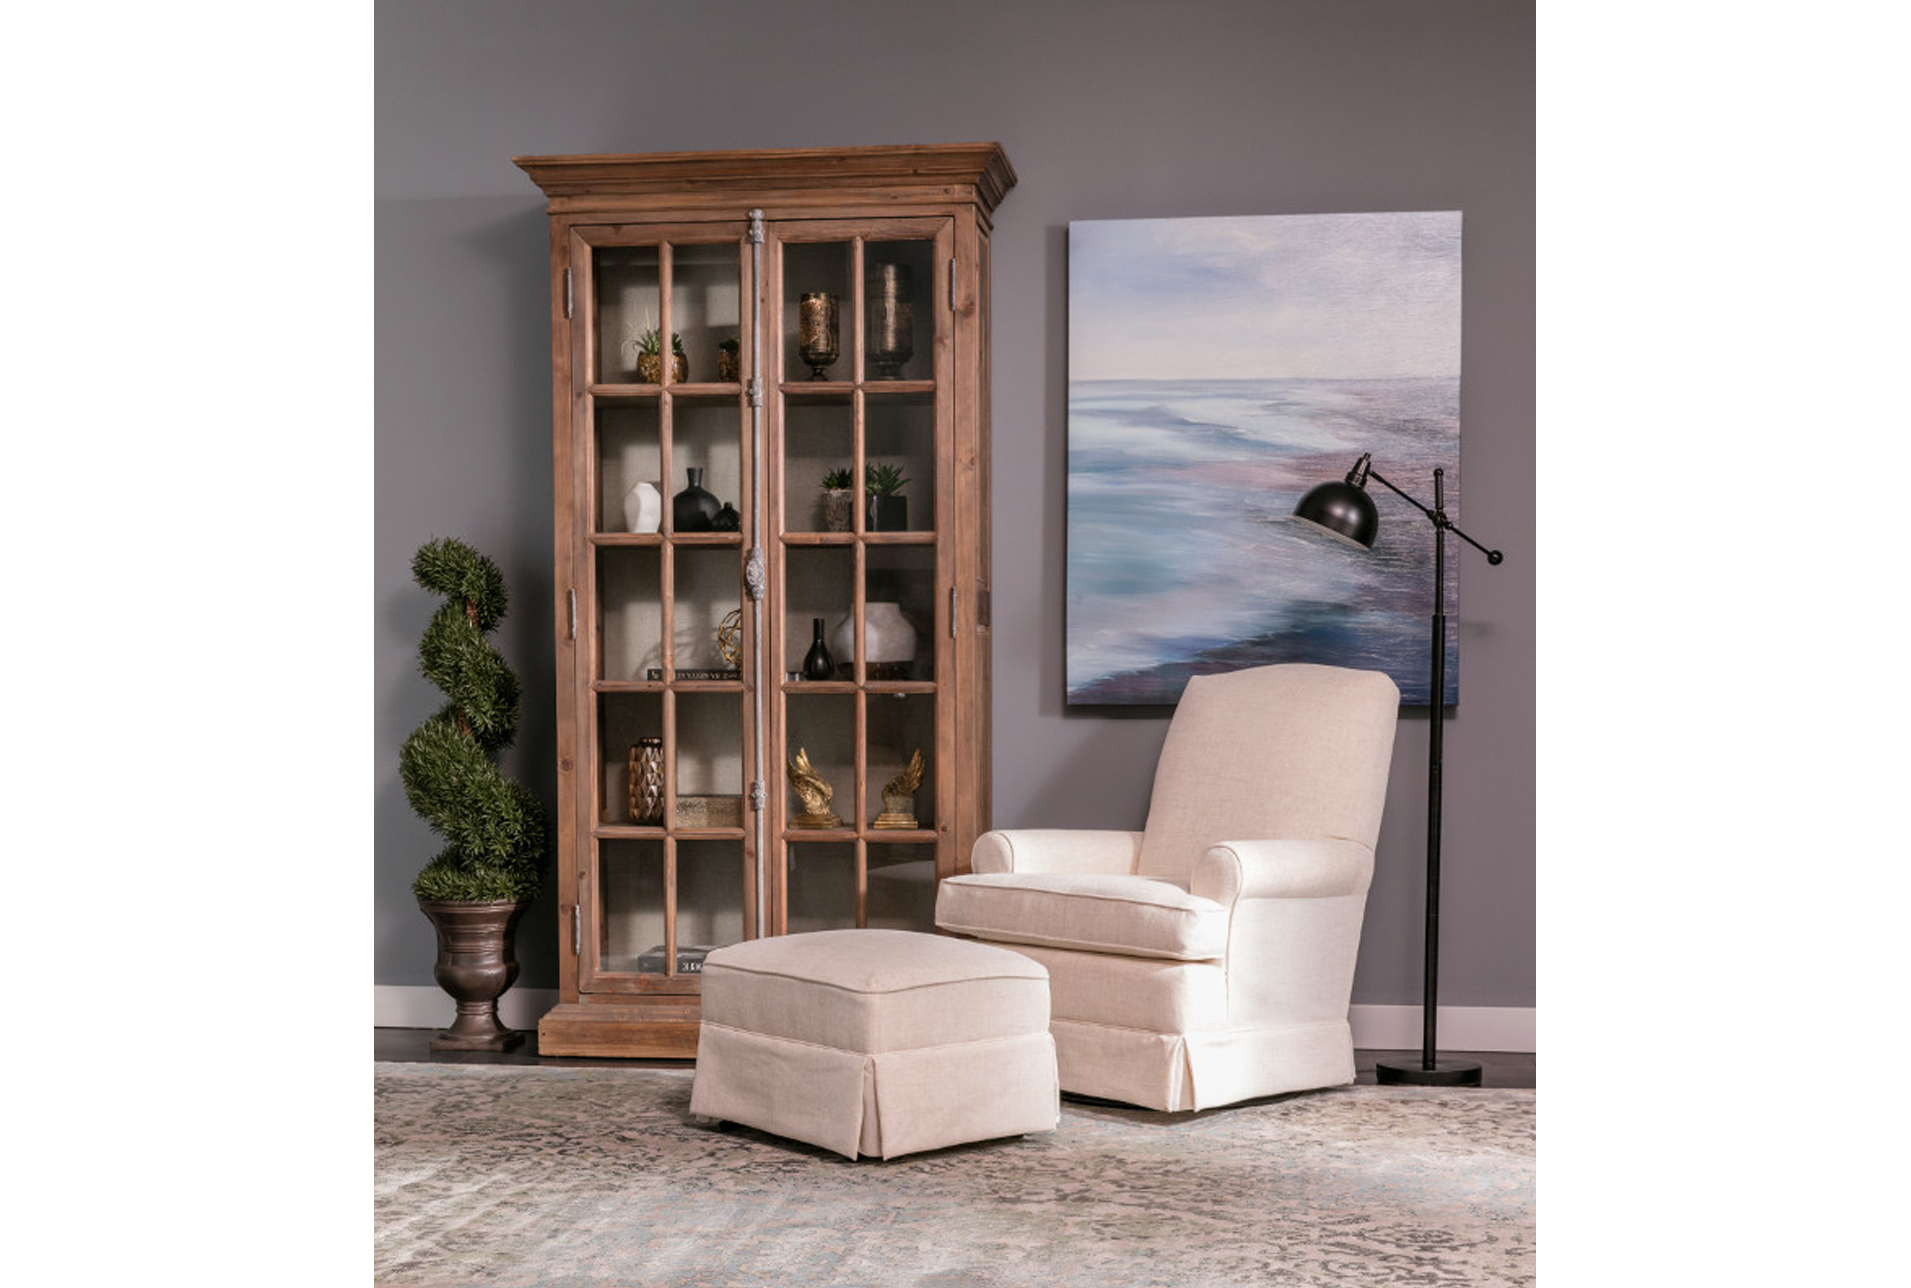 2019 Bailey Skirted Glider Ottoman Pertaining To Bailey Roll Arm Skirted Swivel Gliders (View 1 of 20)